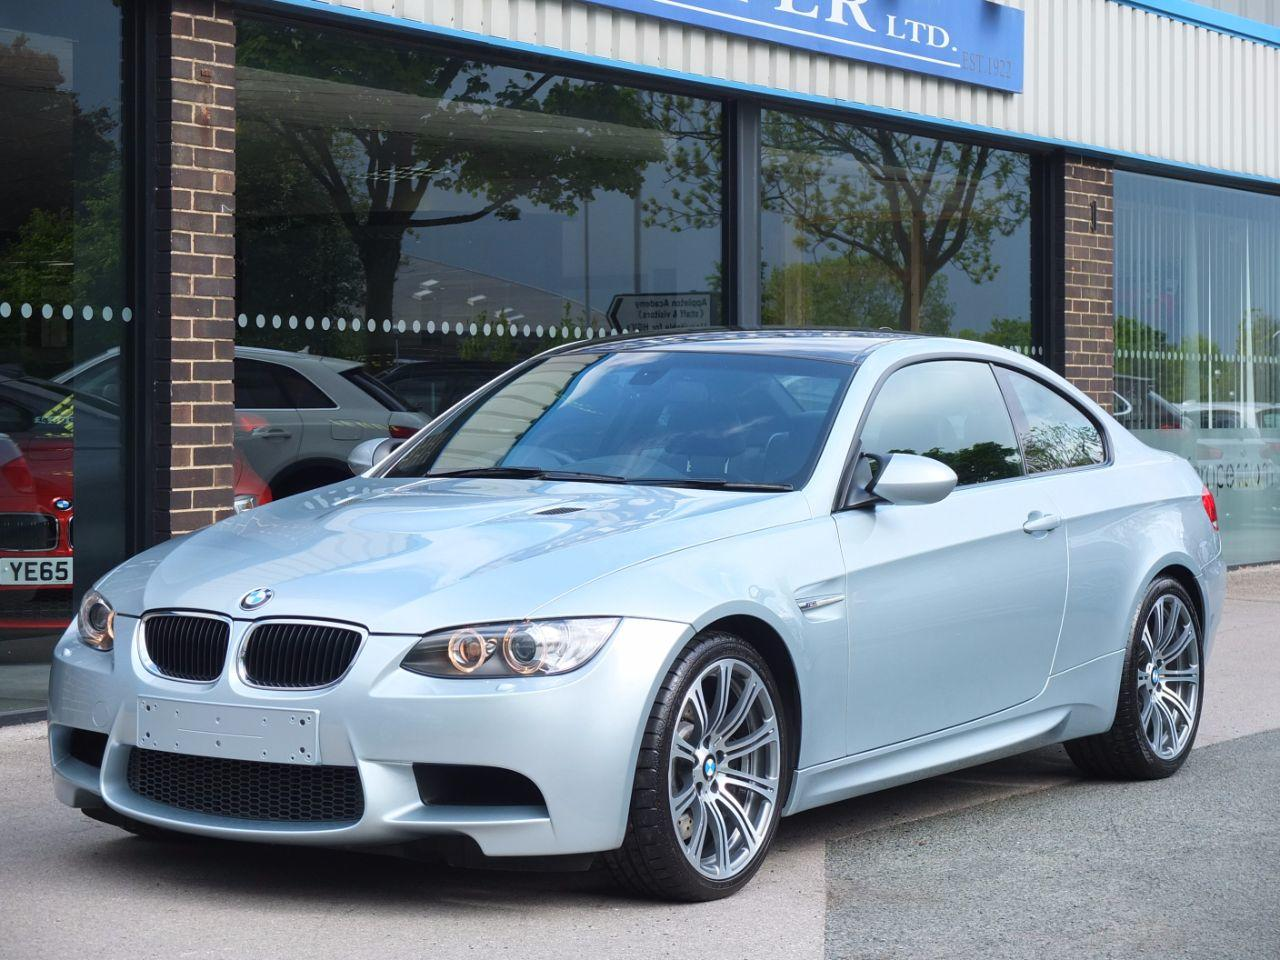 BMW M3 M3 4.0 V8 Coupe DCT Coupe Petrol Silverstone Ii MetallicBMW M3 M3 4.0 V8 Coupe DCT Coupe Petrol Silverstone Ii Metallic at fa Roper Ltd Bradford